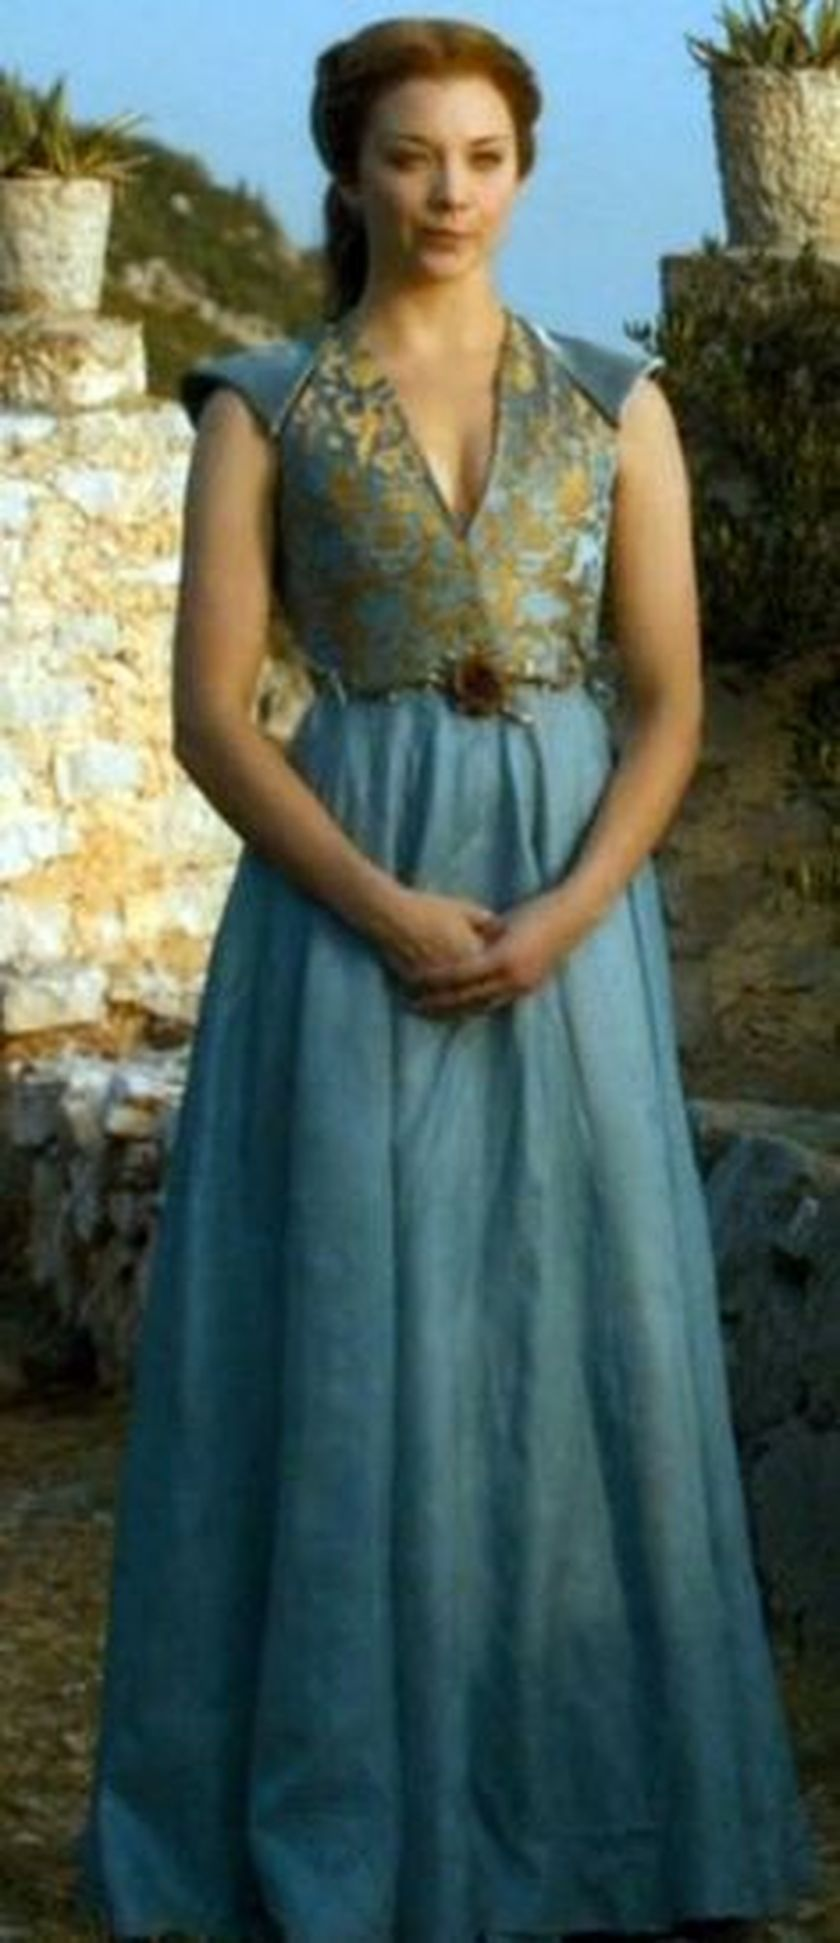 Margaery tyrell game of thrones dress costume 14 - Fashion ...  Margaery tyrell...